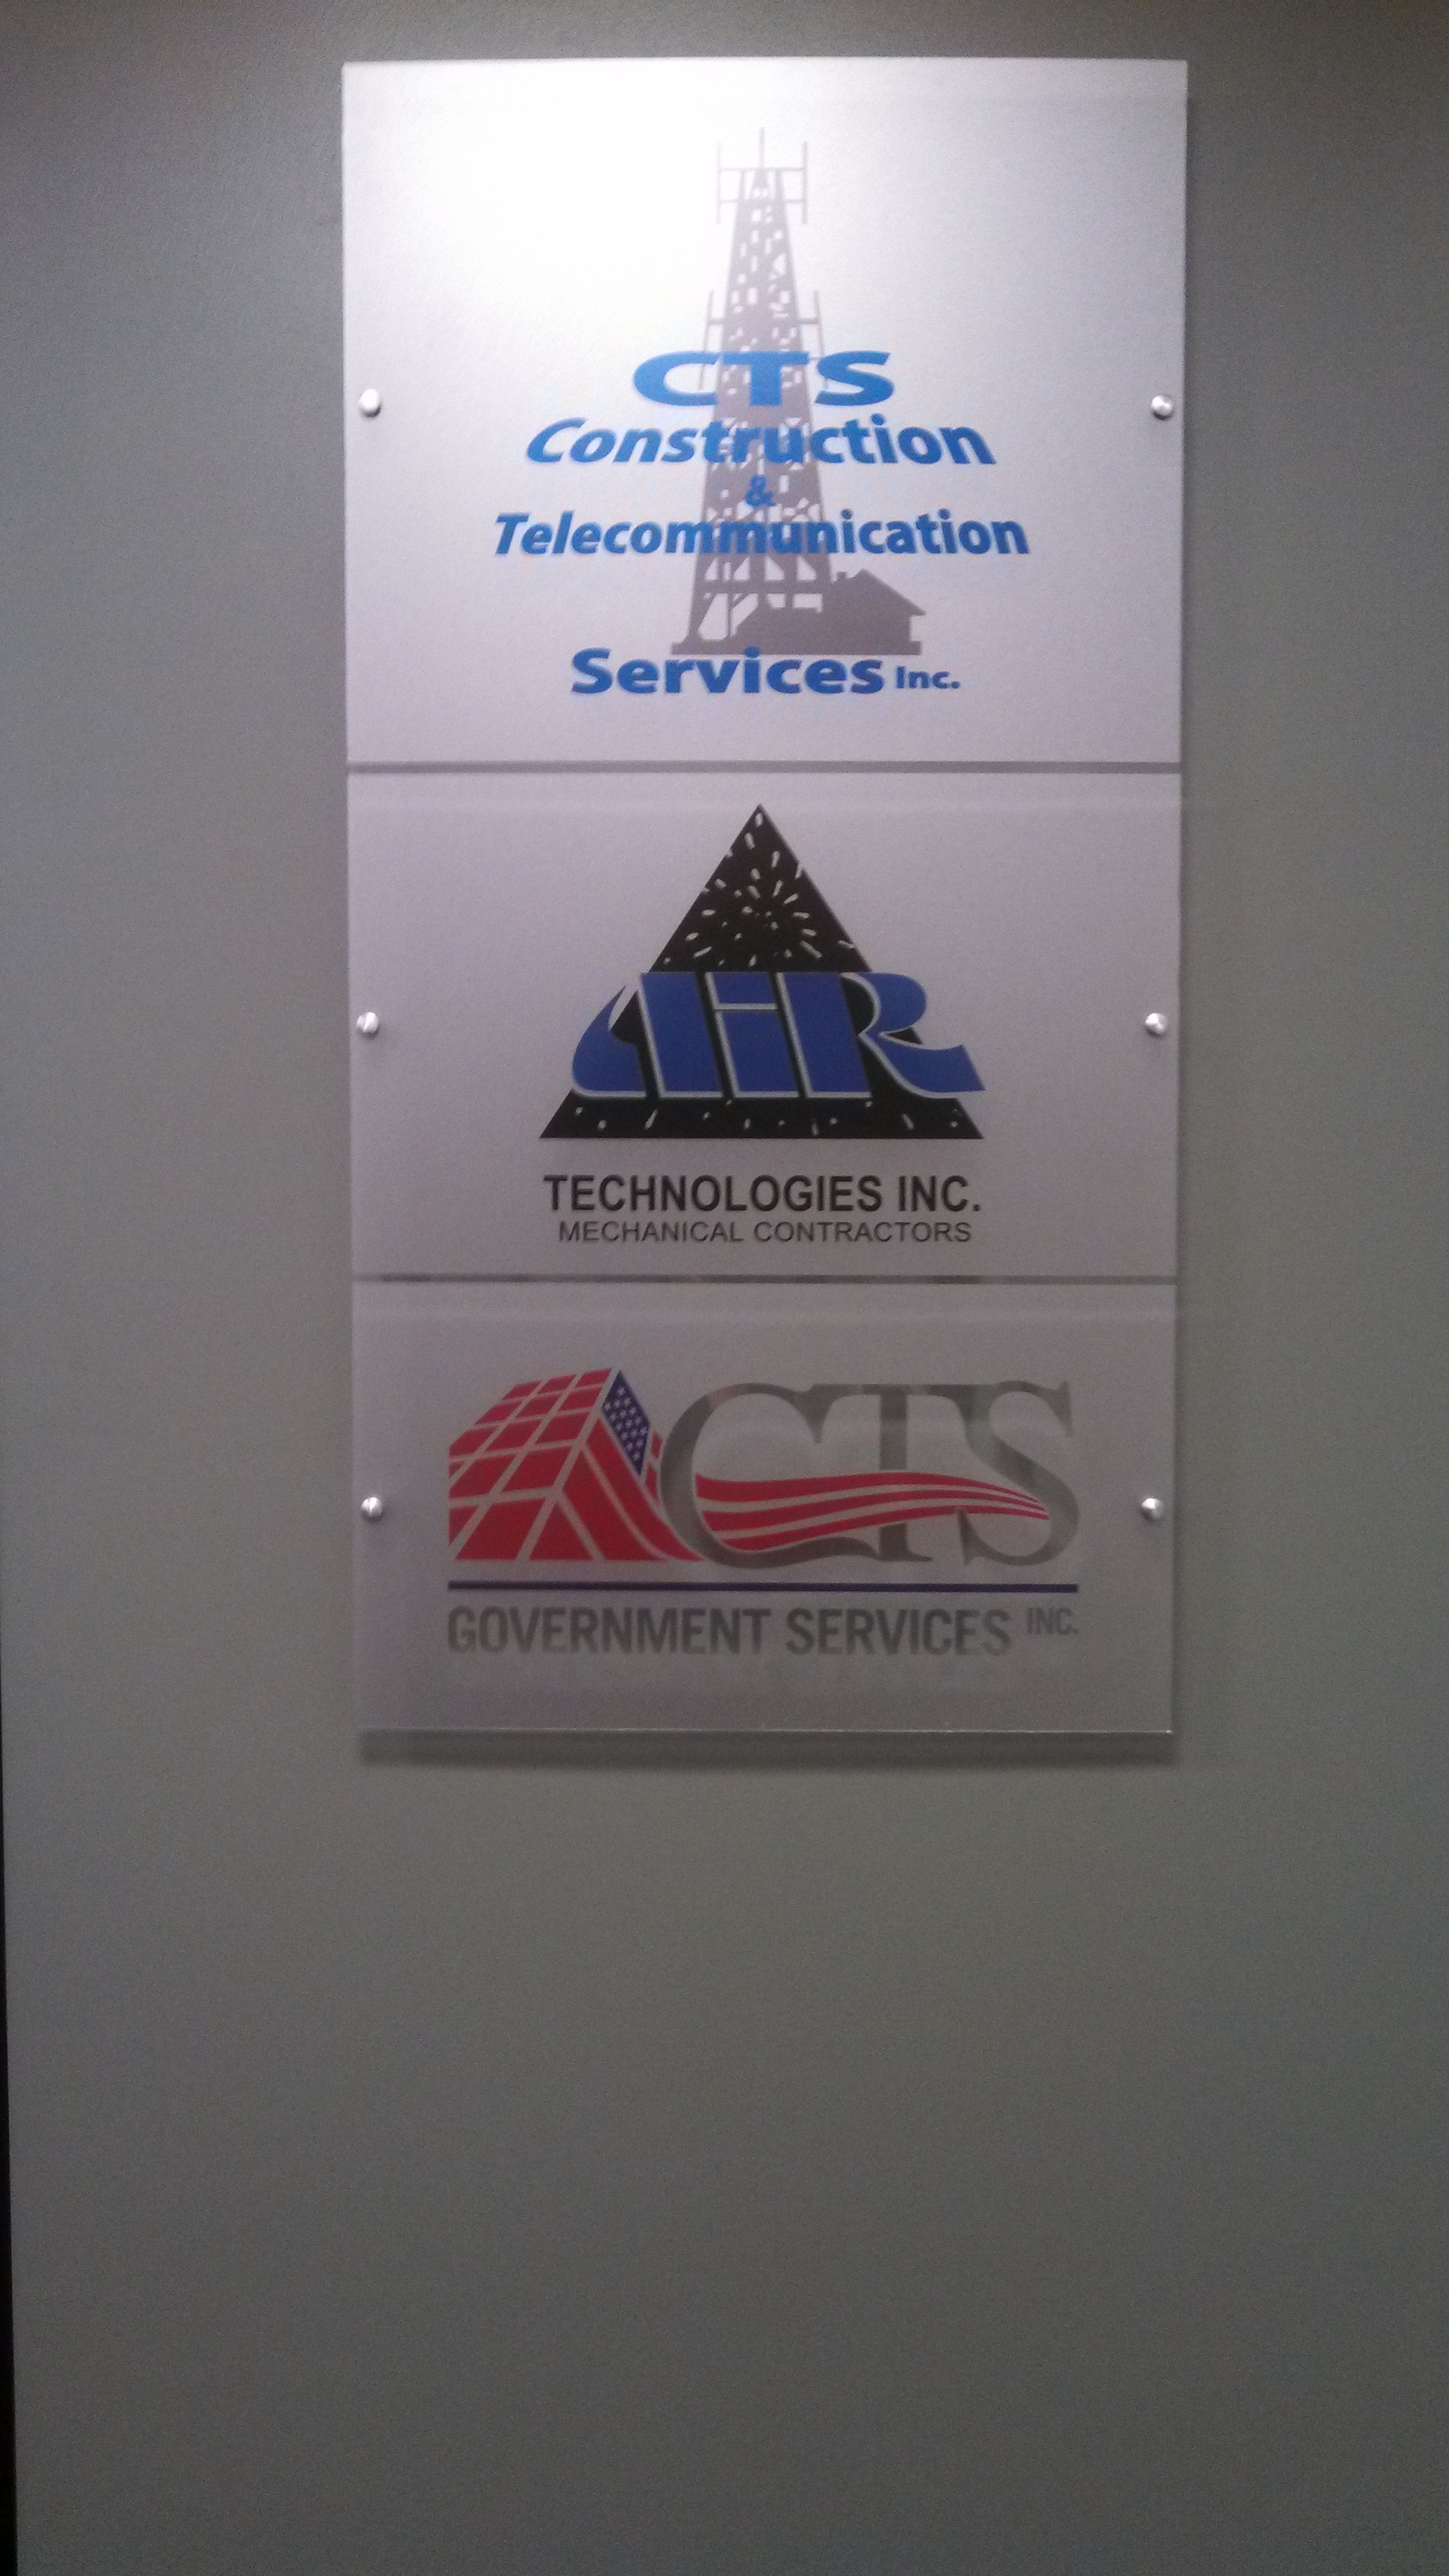 CTS Construction & Telecommunication in Danvers